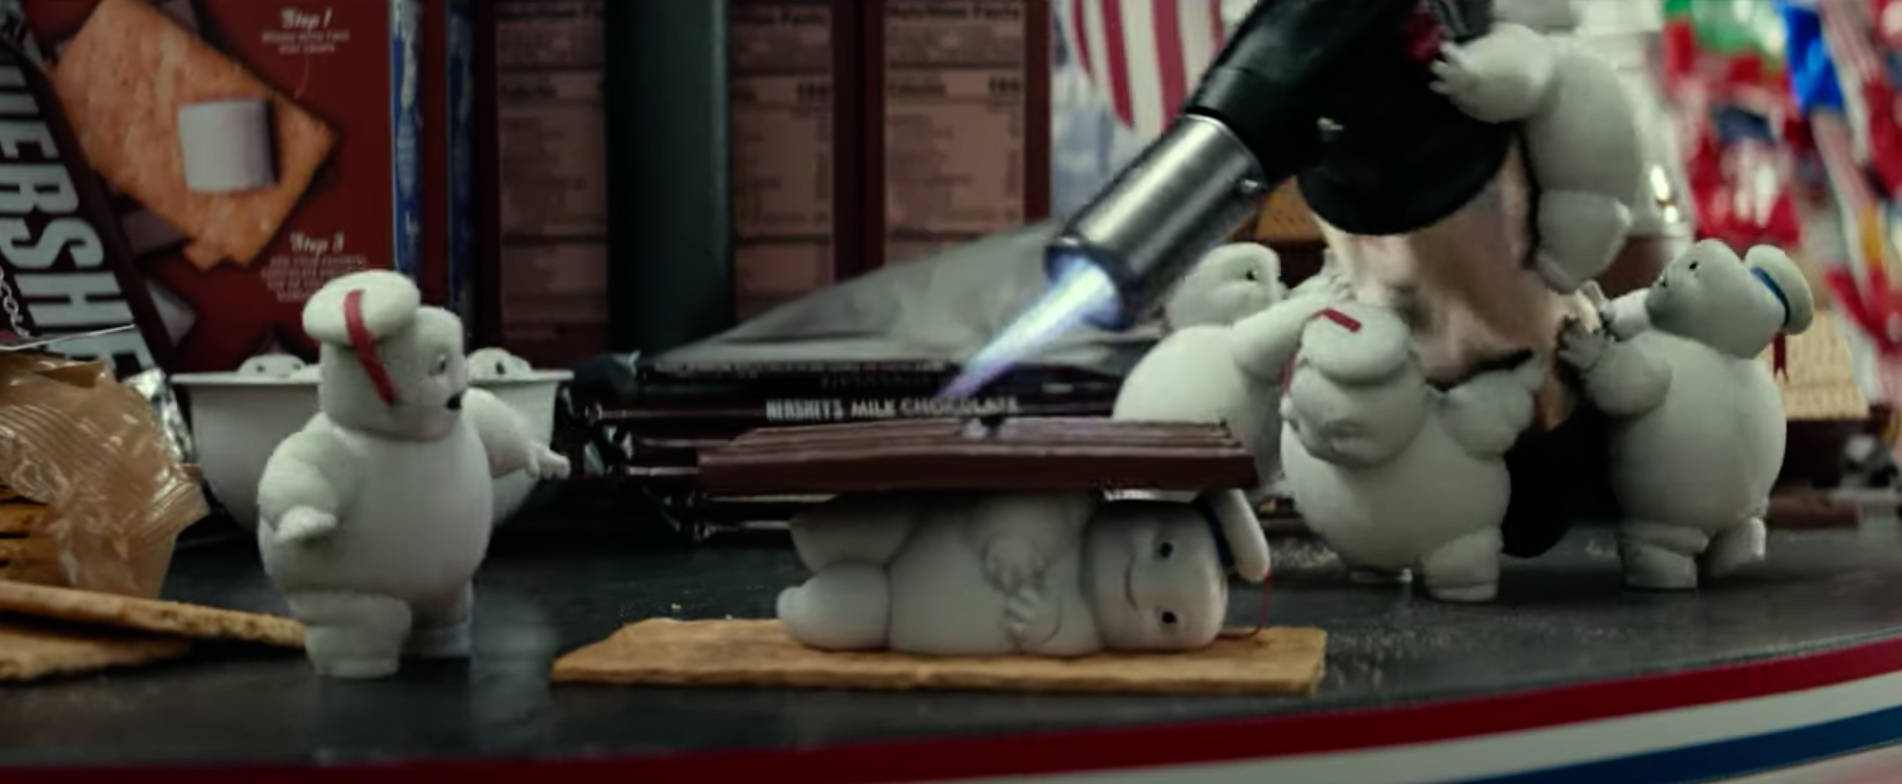 Stay Puft Marshmallow Men in Ghostbusters: Afterlife